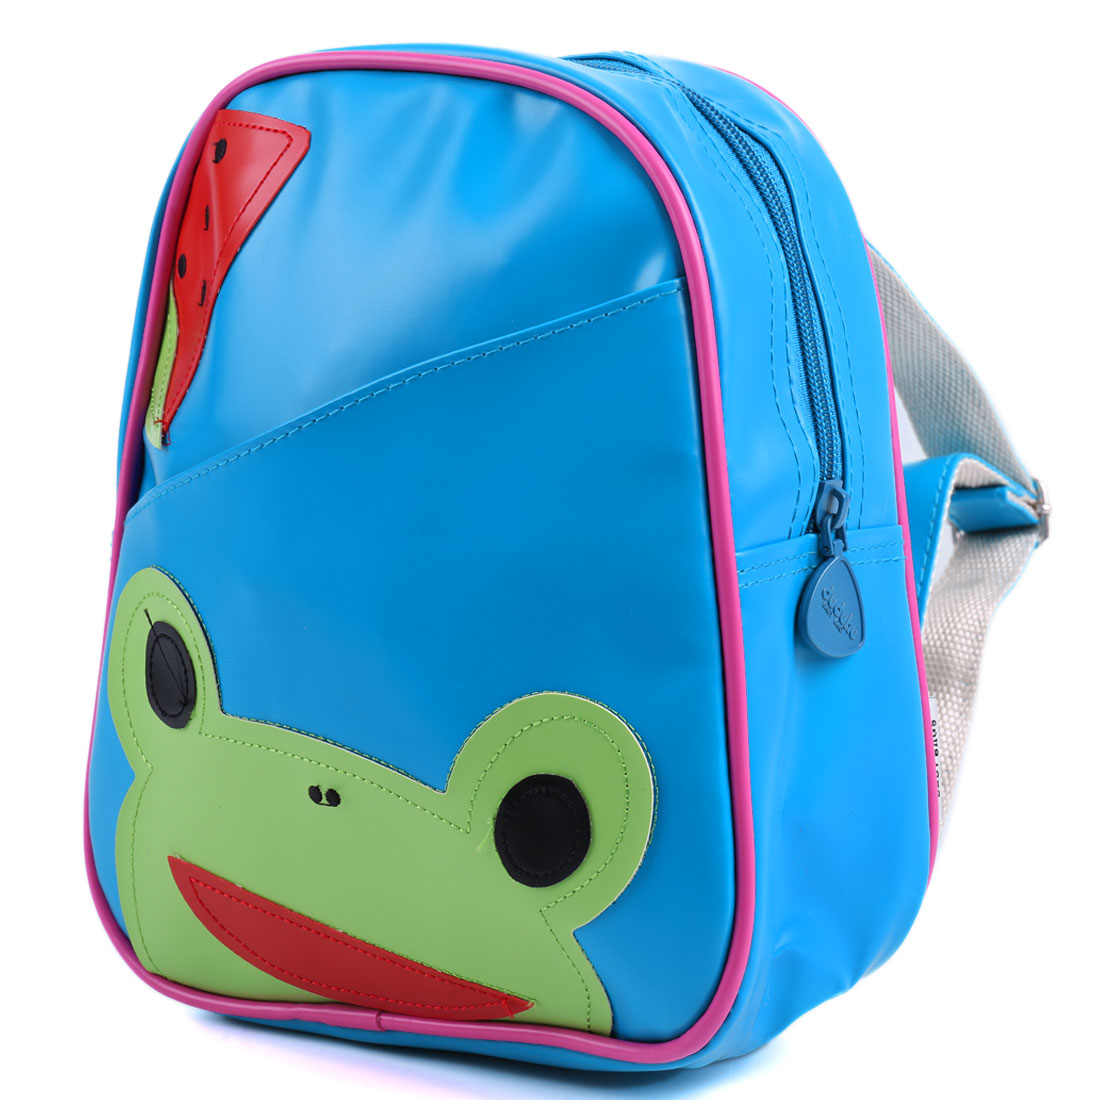 Kids Adjustable Straps Interior Pocket Cartoon Frog Backpacks Blue